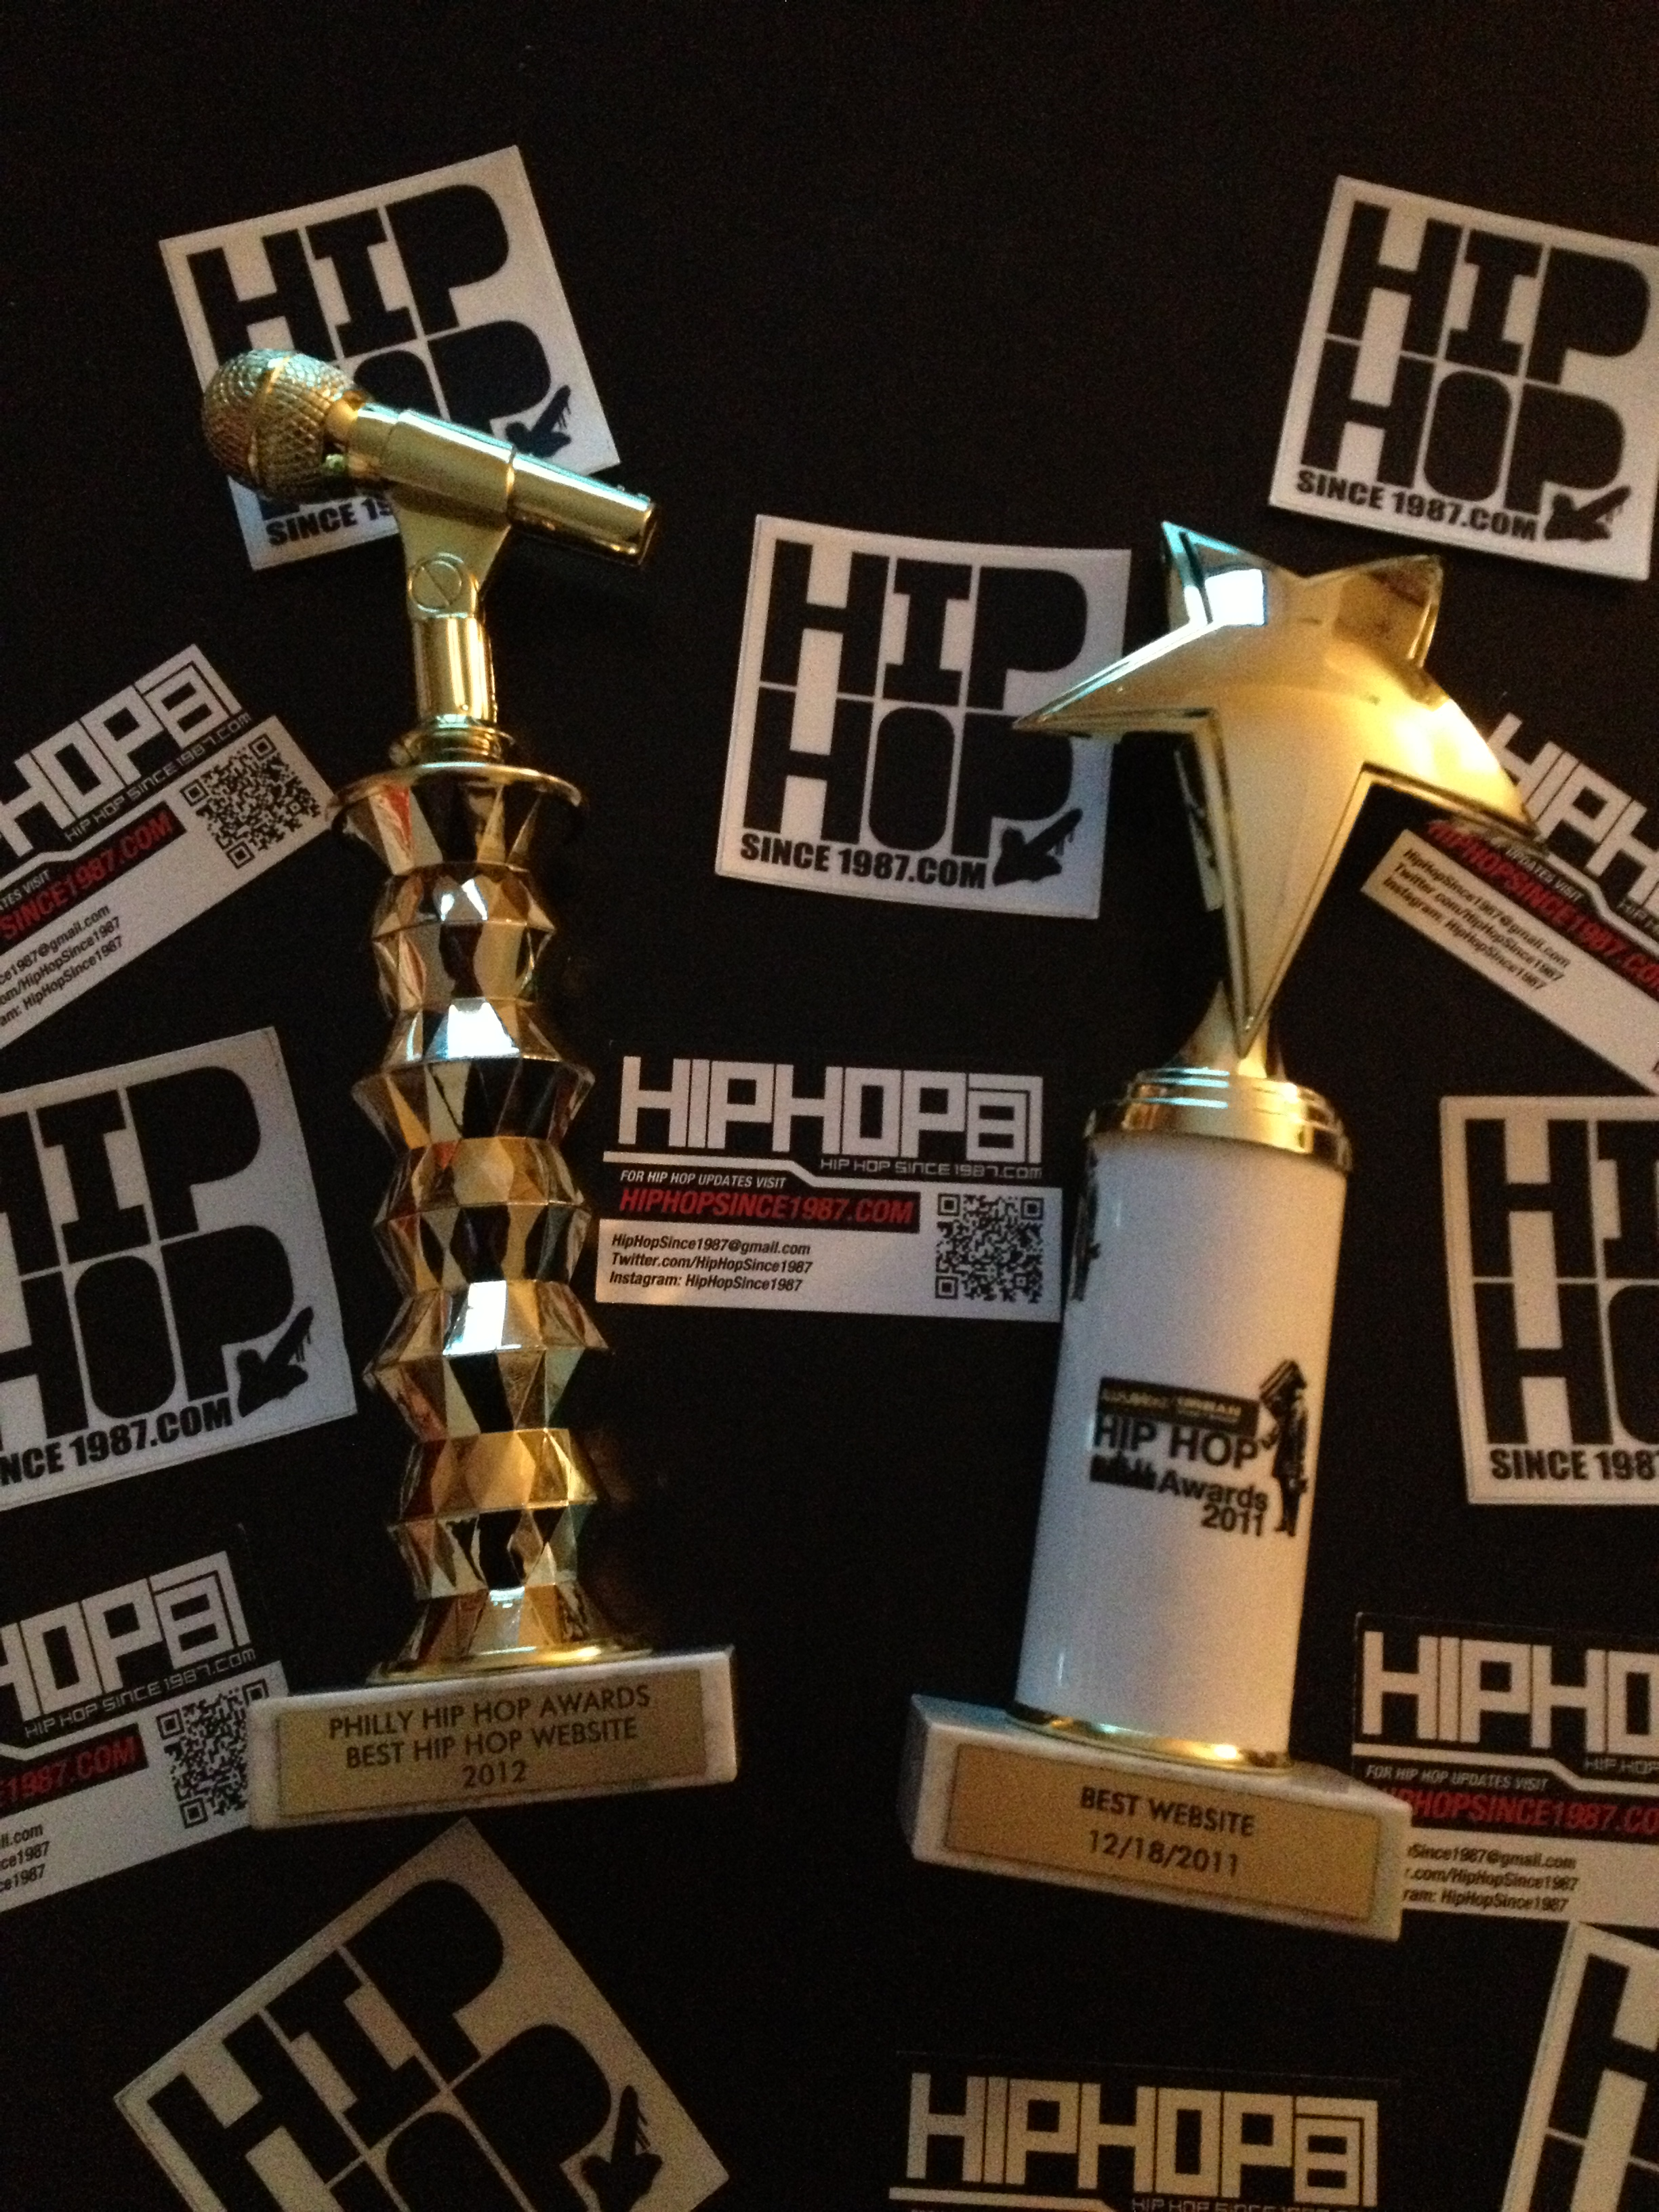 2012-philly-hip-hop-awards-list-of-all-the-winners-HHS1987 2012 Philly Hip Hop Awards (List of All The Winners)